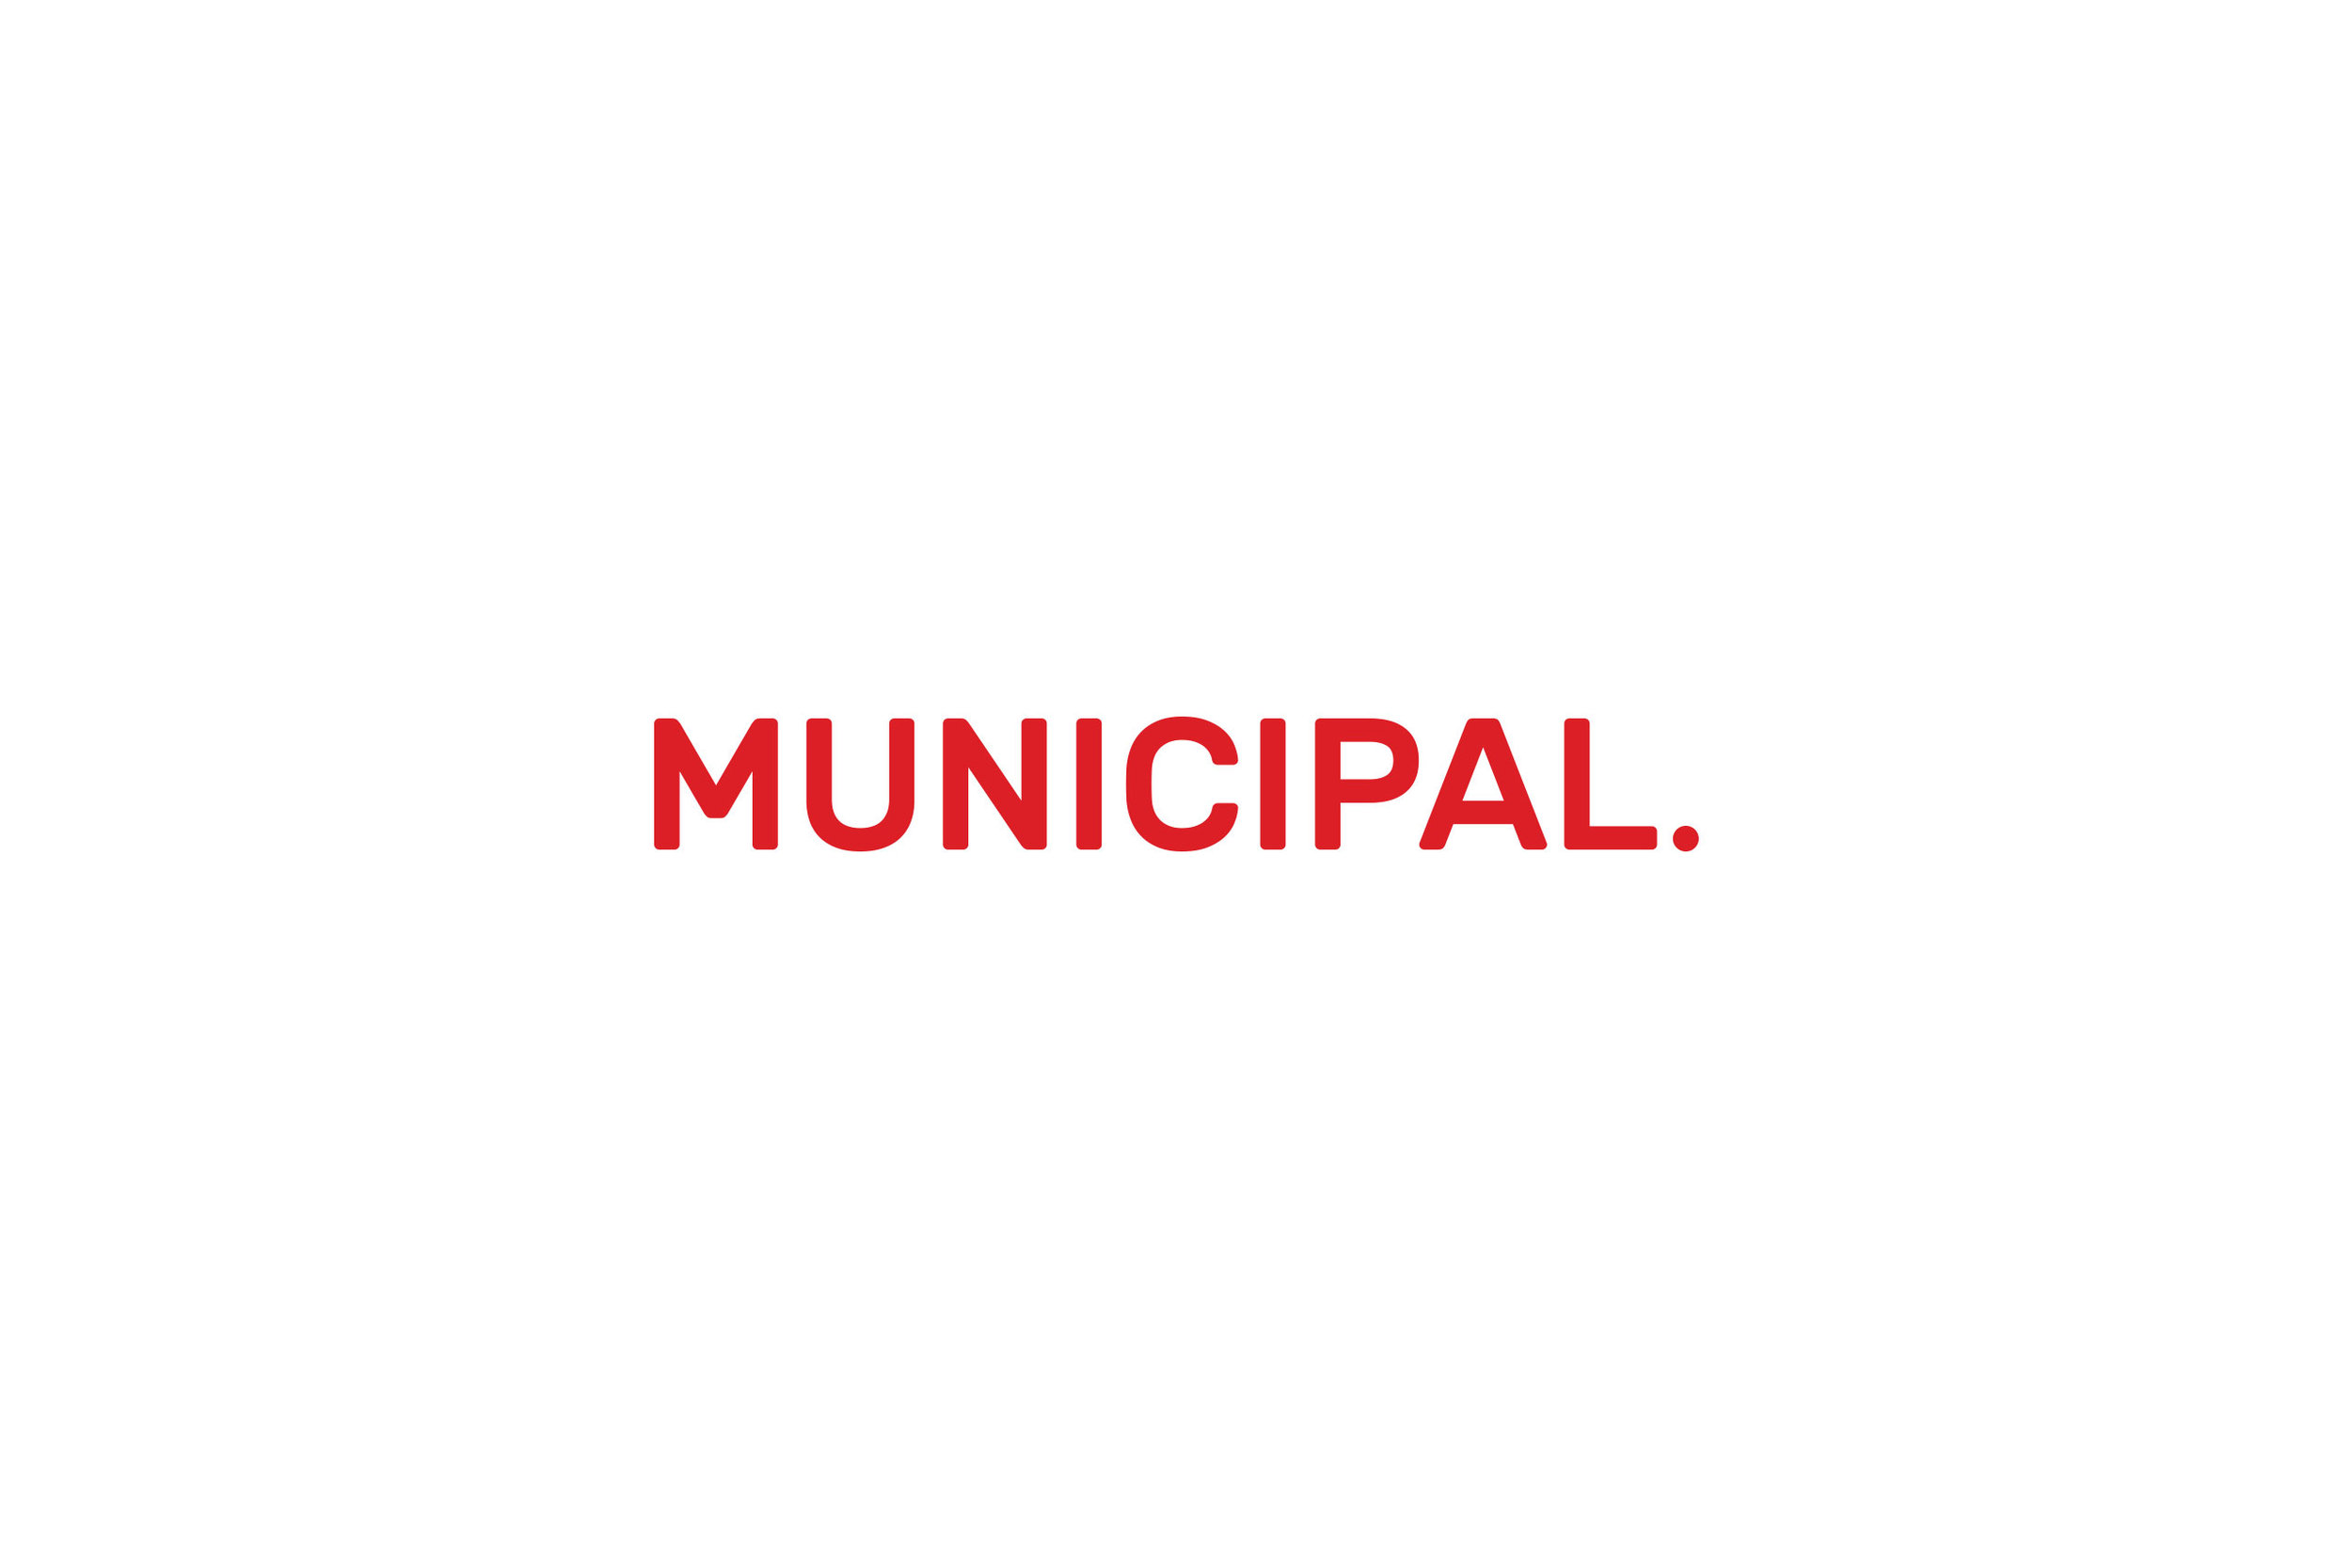 Municipal-Canvas-5.jpg